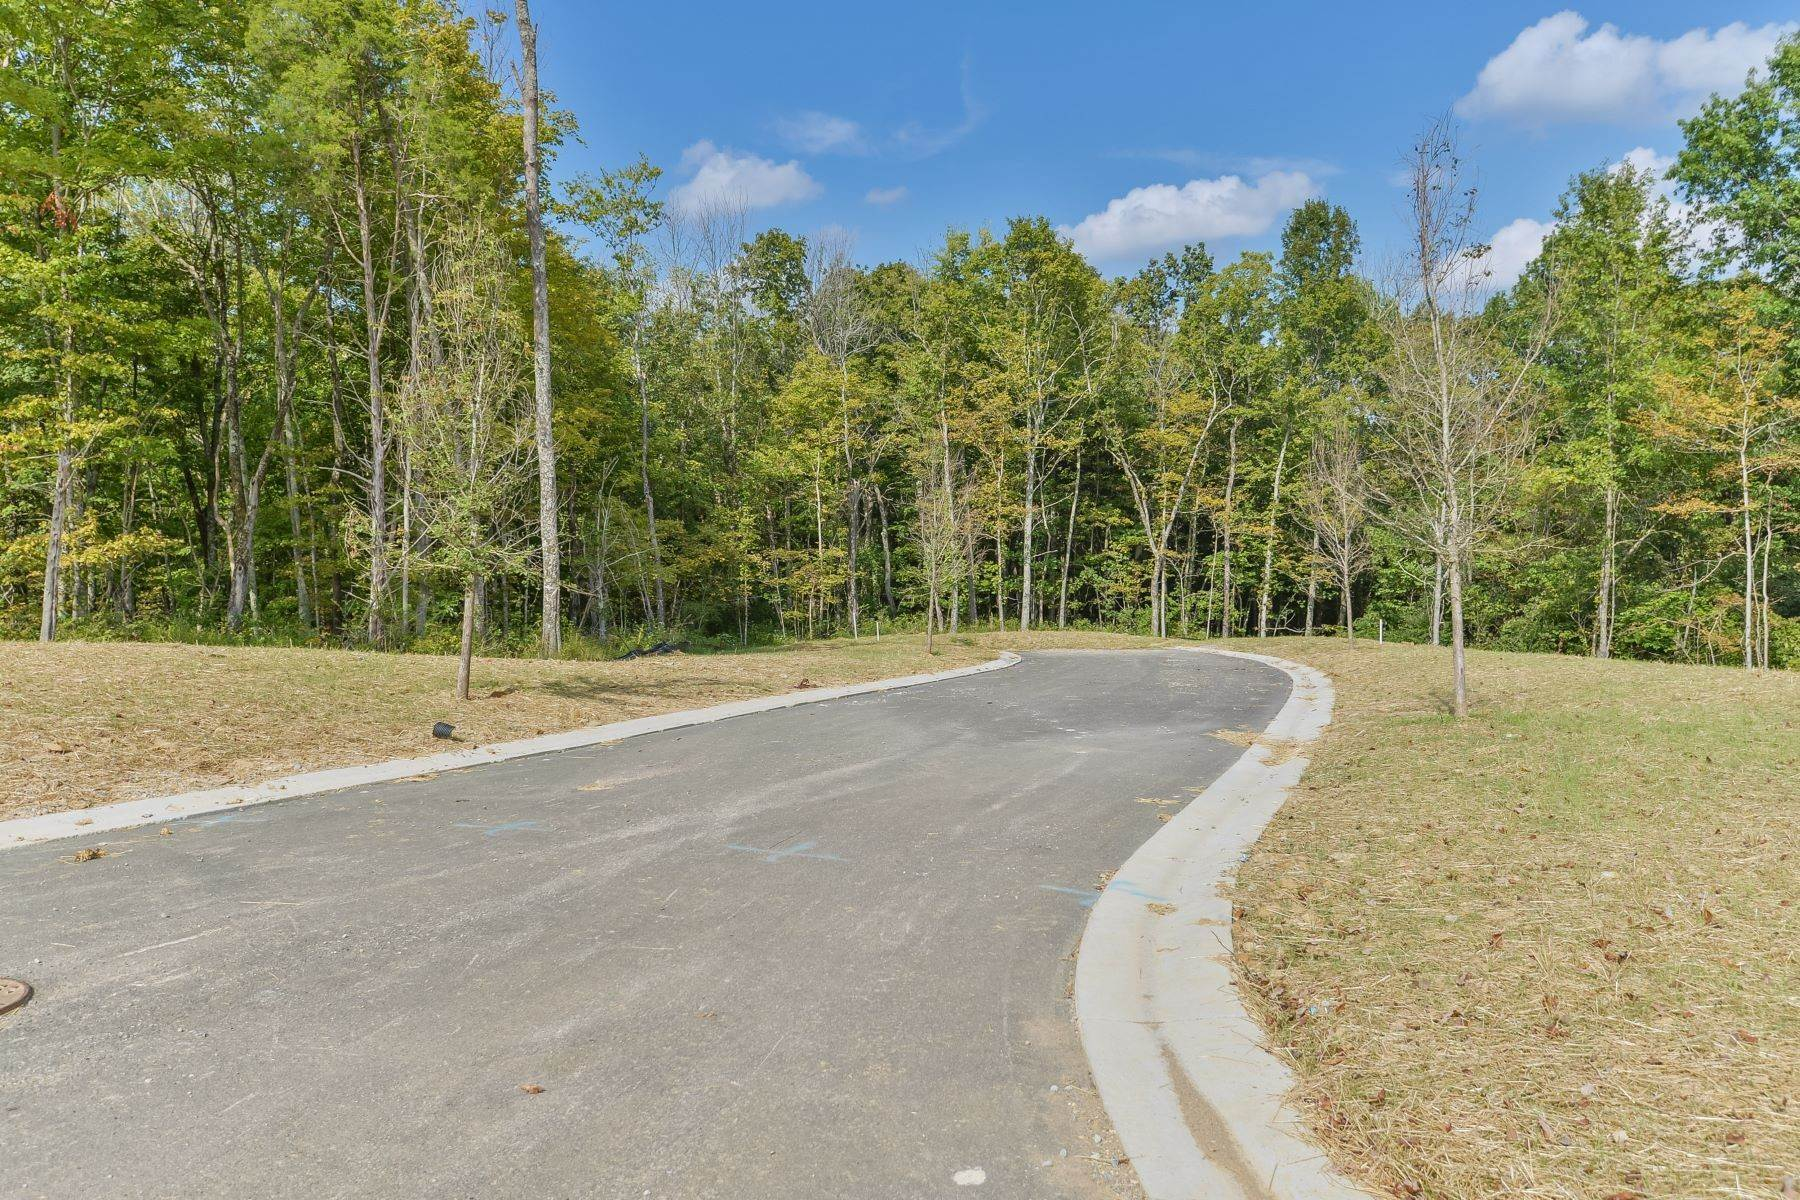 Land for Sale at Lot 135 - Catalpa Farms 135 Catalpa Farms Drive Fisherville, Kentucky 40023 United States